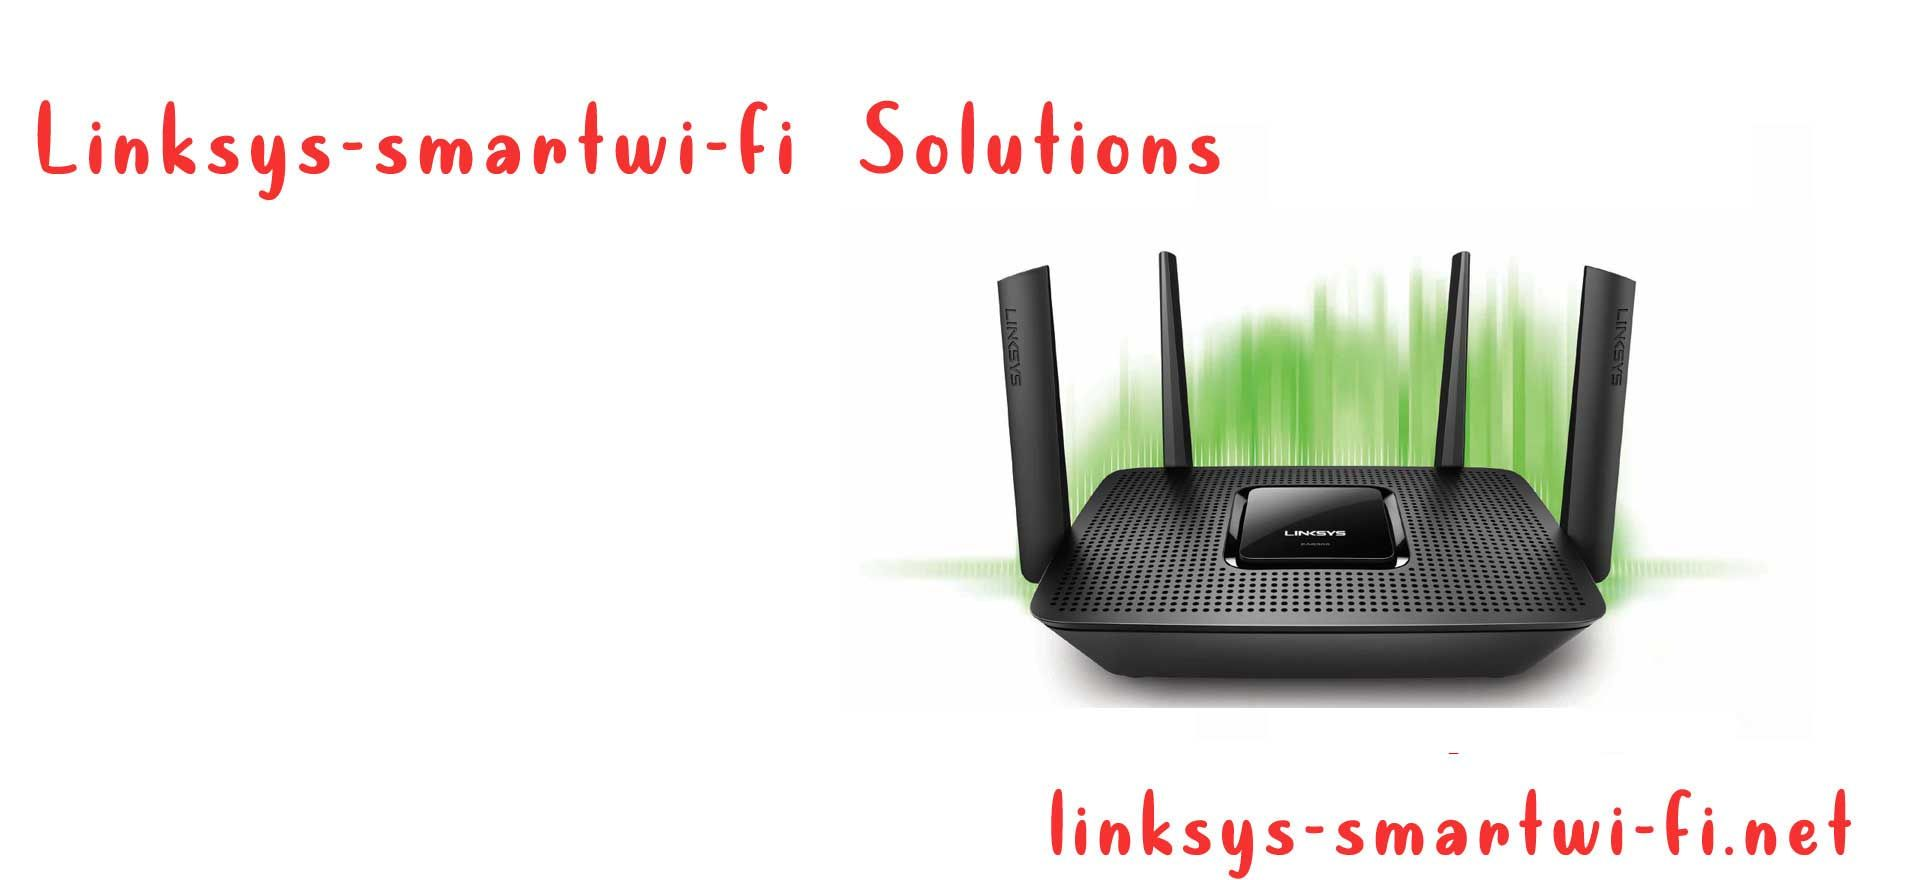 Get complete technical support for Linksys Smart Wifi Router